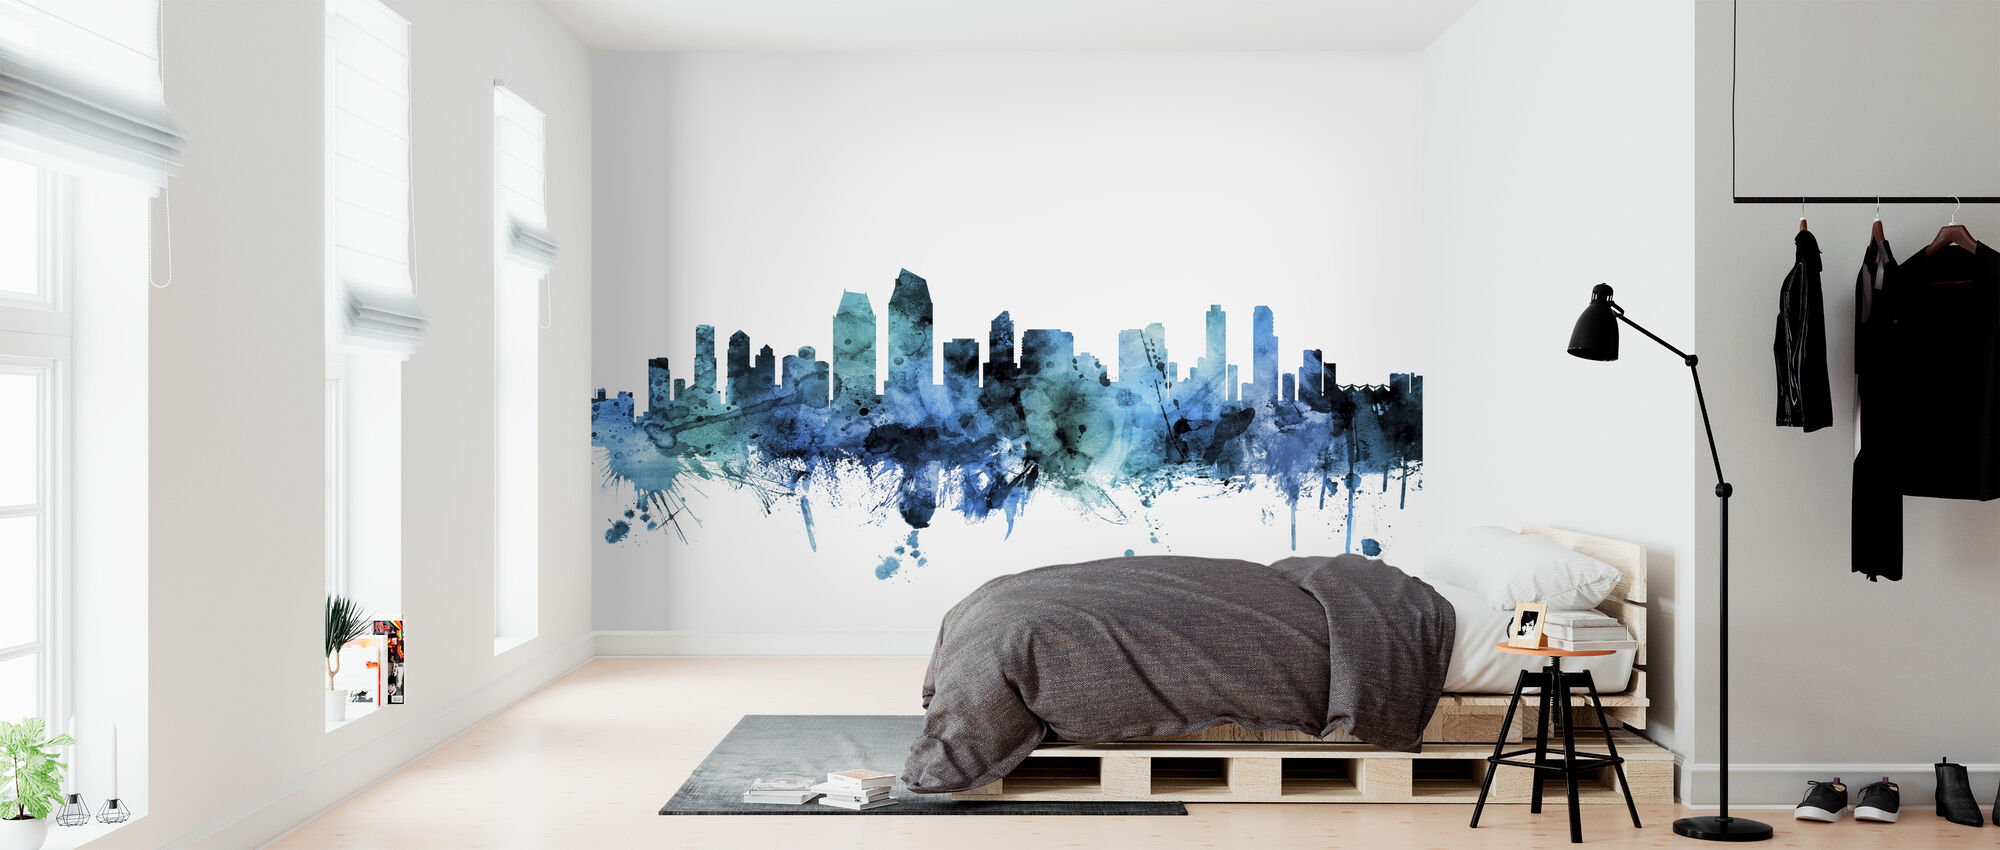 San Diego California Skyline - Wallpaper - Bedroom